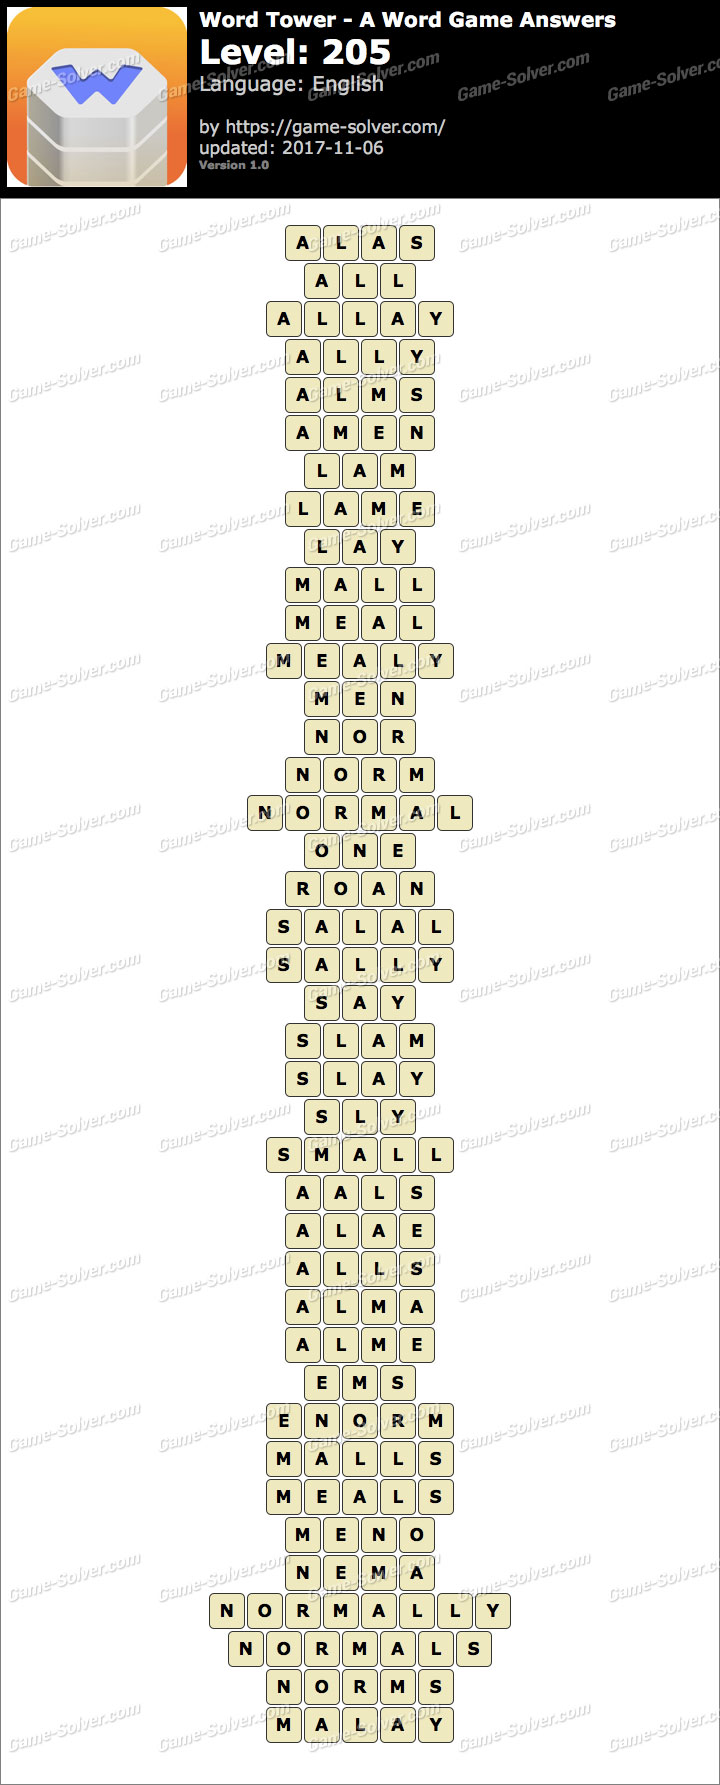 Word Tower Level 205 Answers